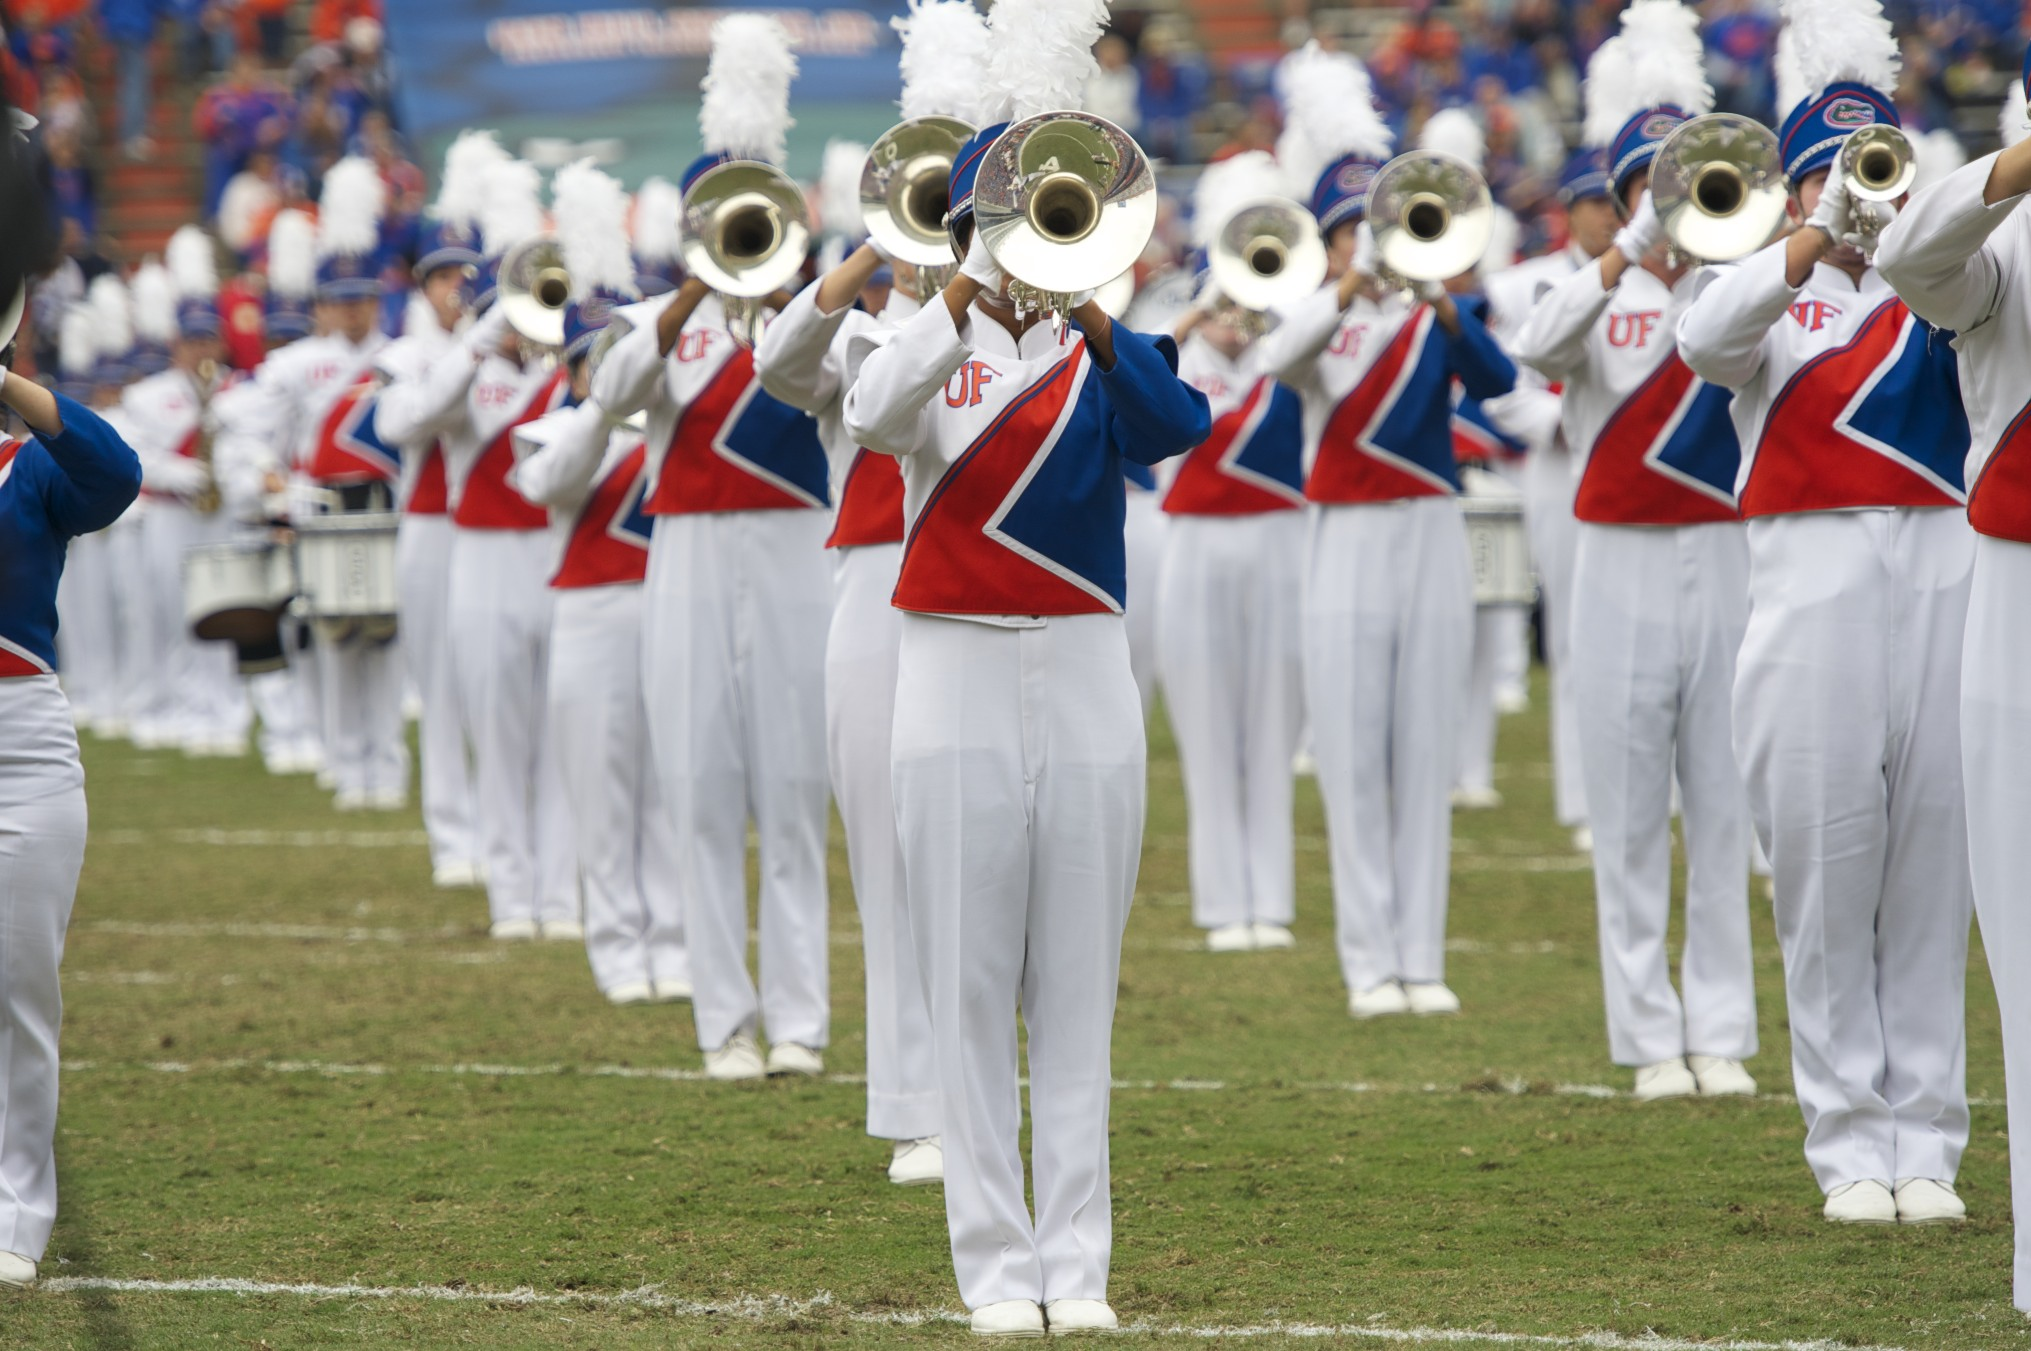 Gator Marching Band performs before the start of the game on Saturday.